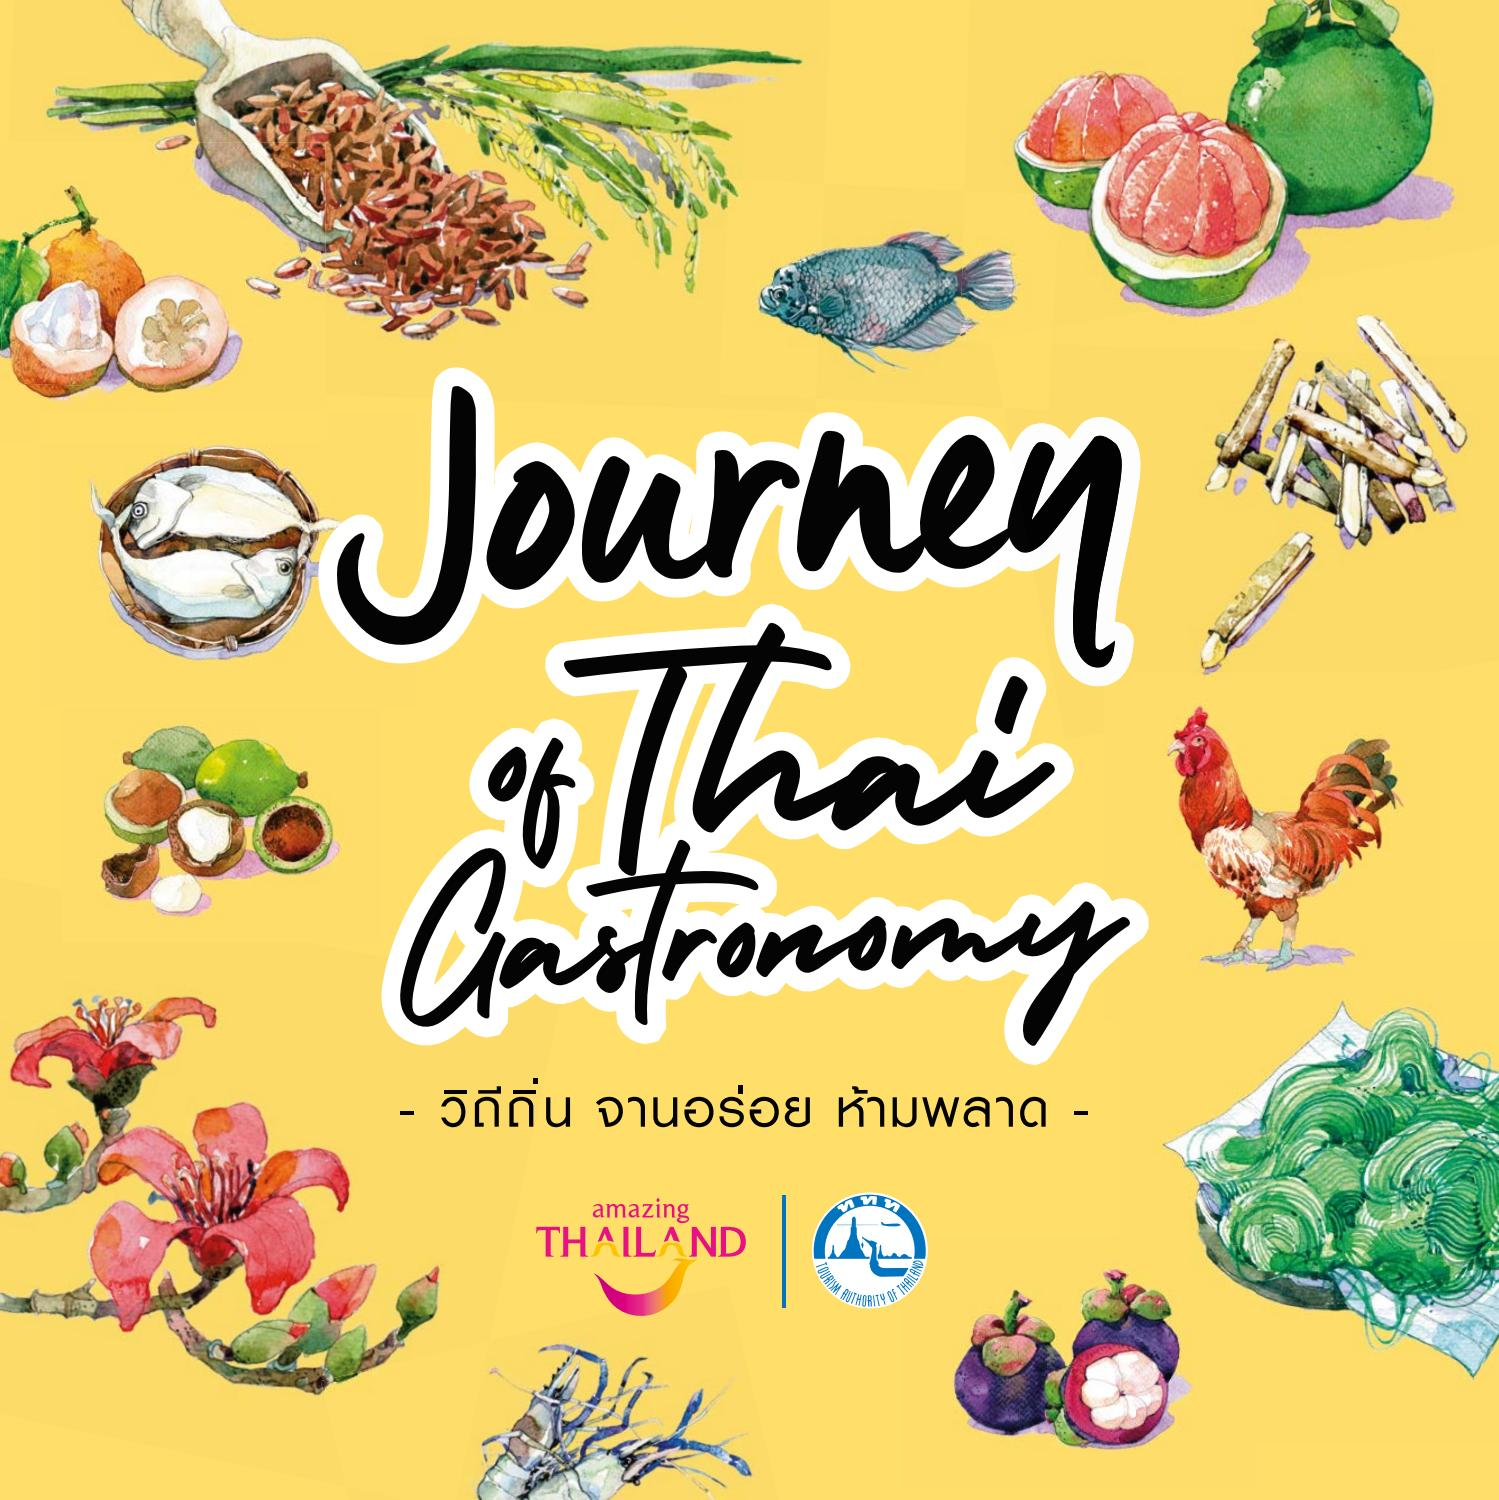 Journey of Thai Gastronomy [Eng] by neekrung connects.